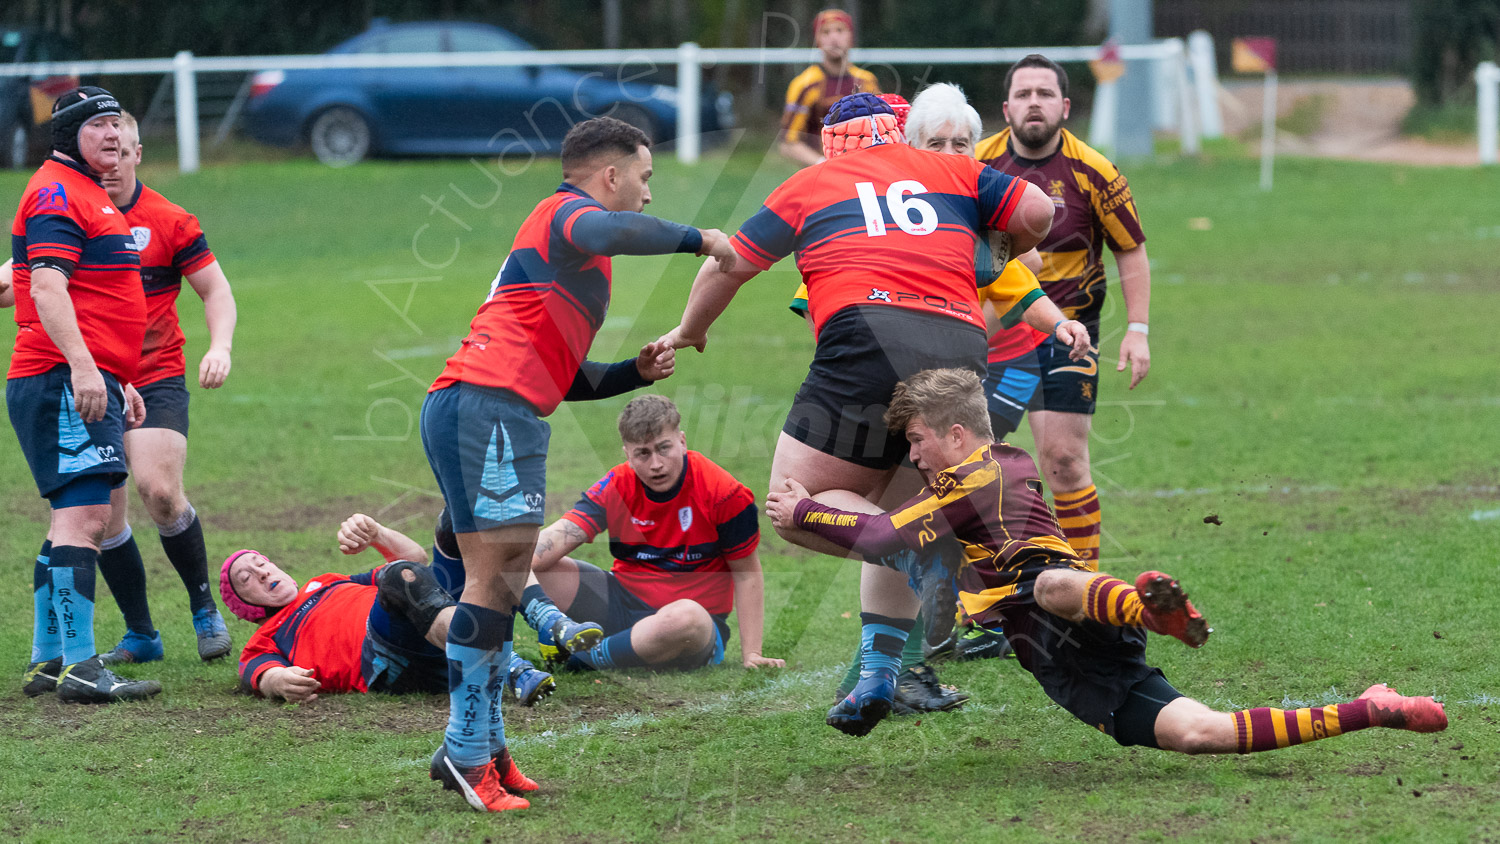 20181027 Amp Extras vs St Neots 2nd XV #2484